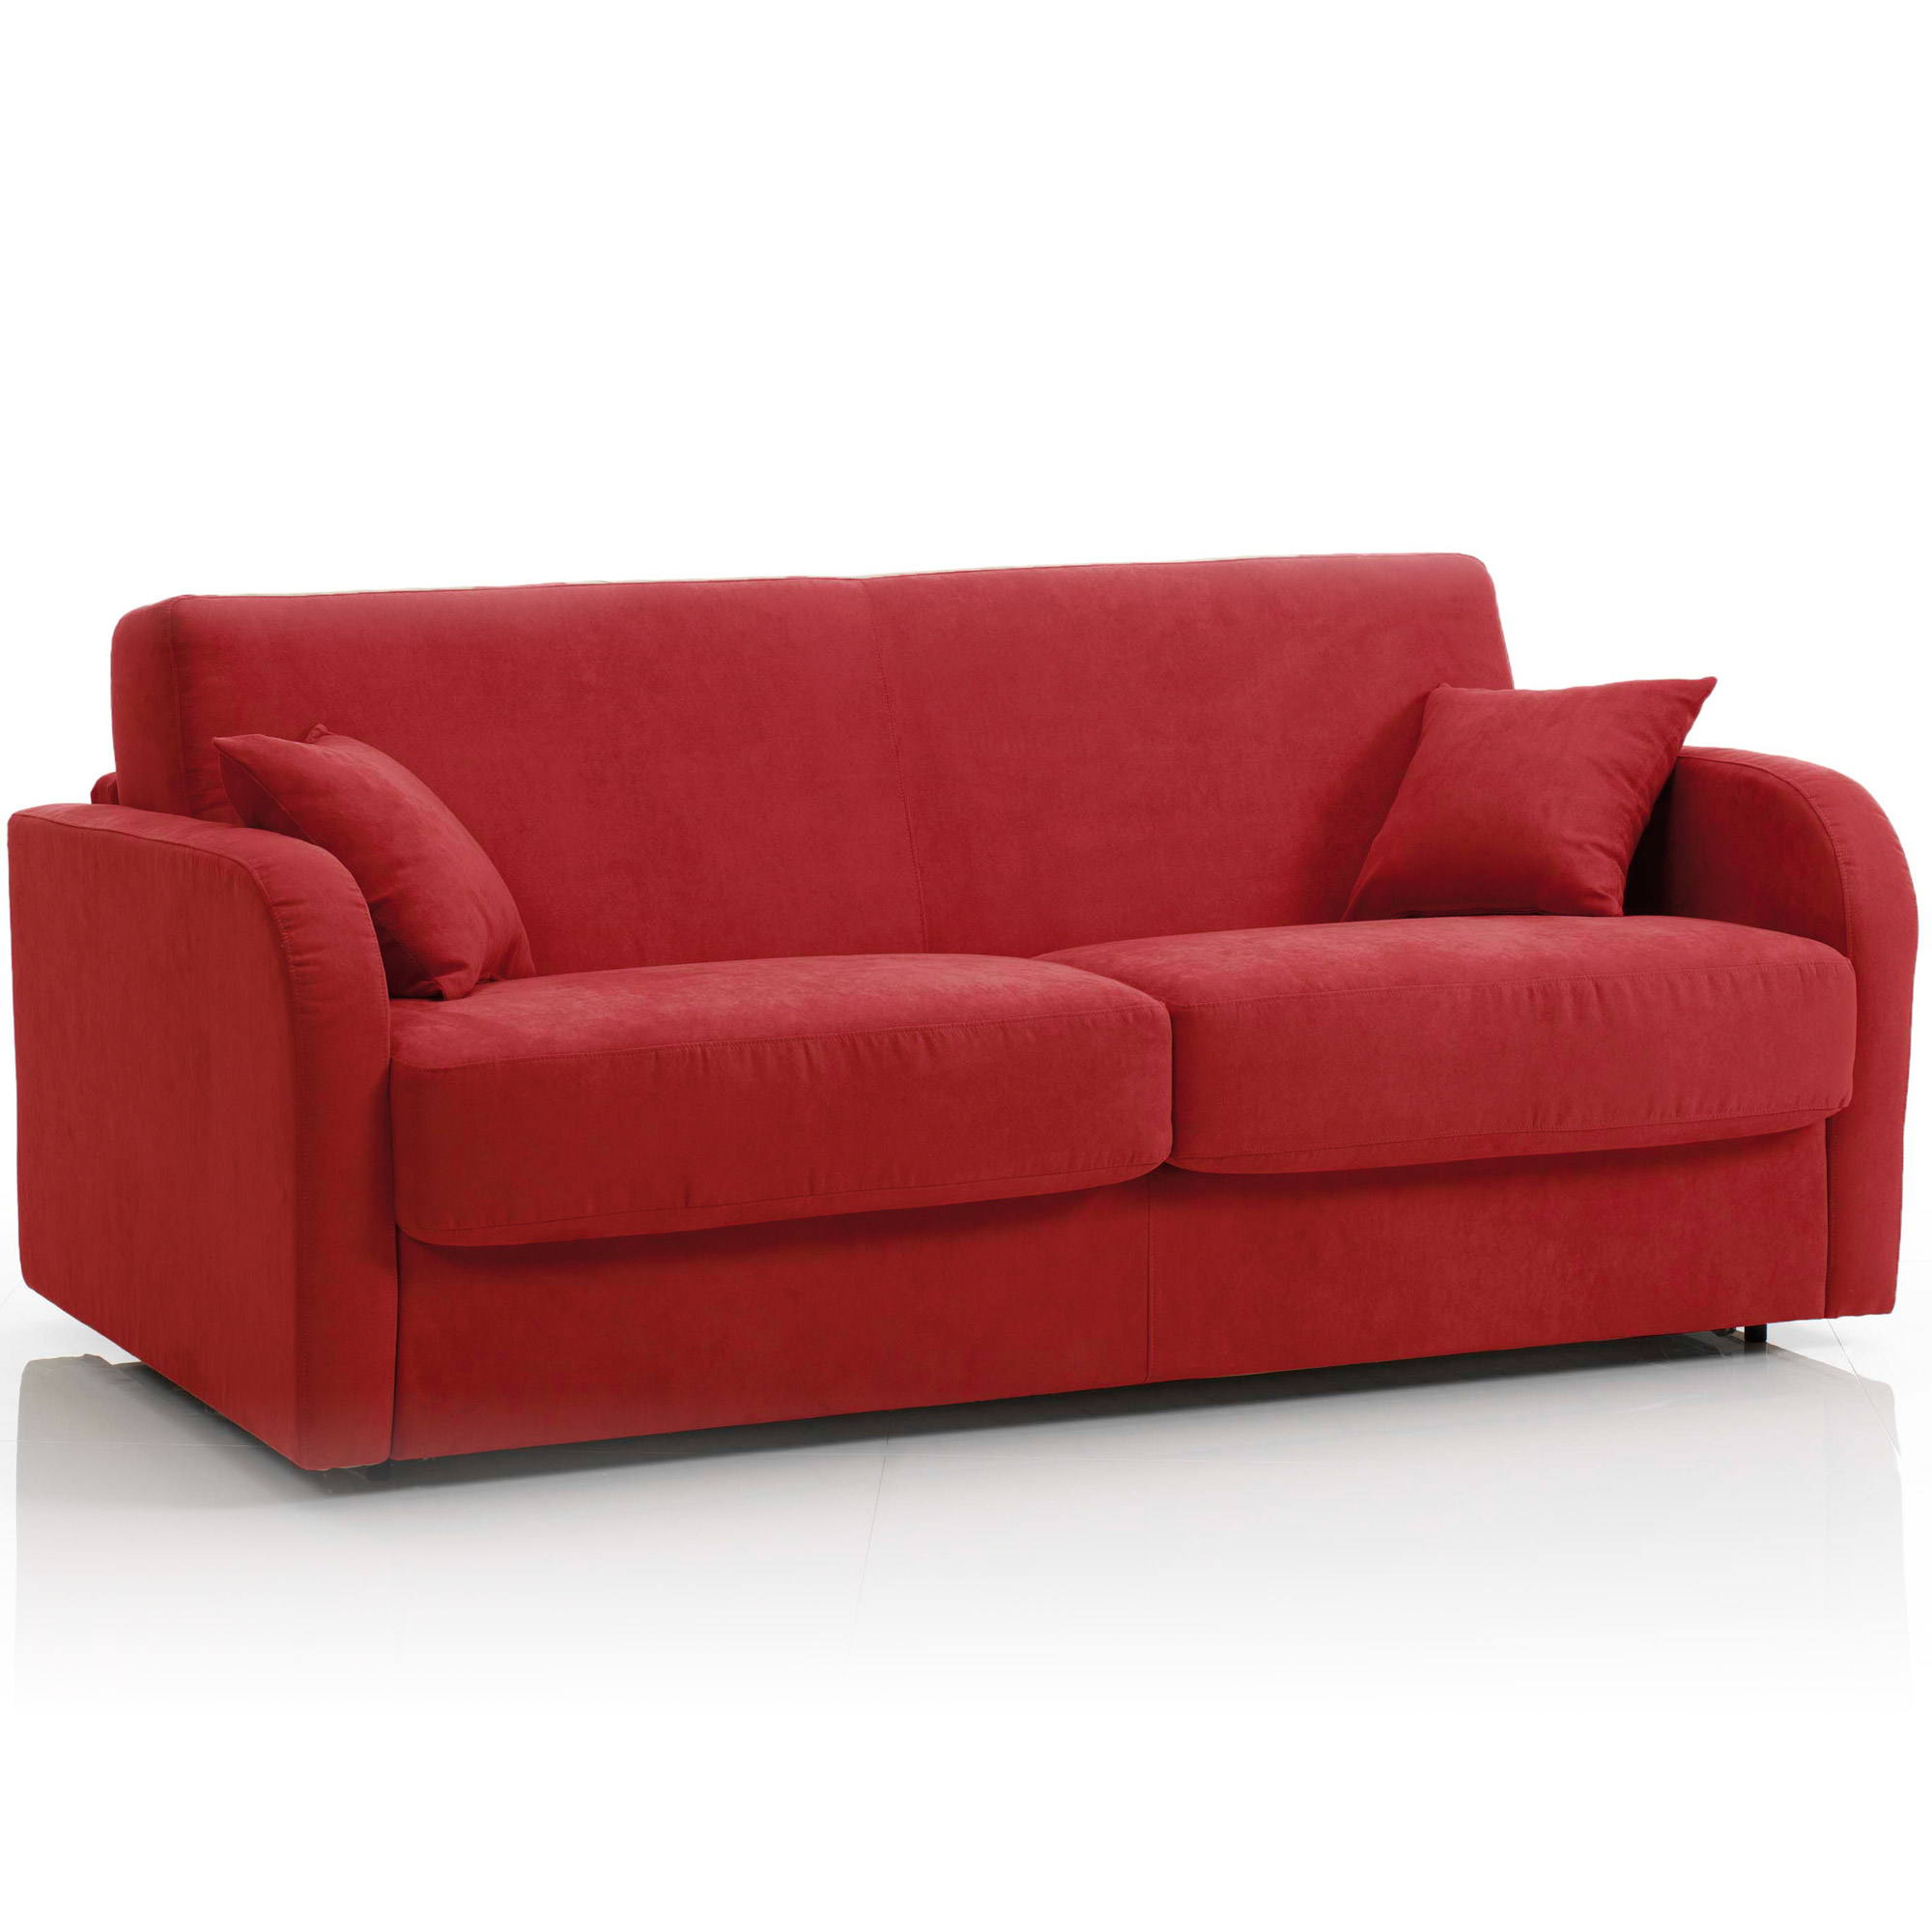 Canap convertible 3 places maxi tissu d houssable rouge ebay - Canape convertible definition ...